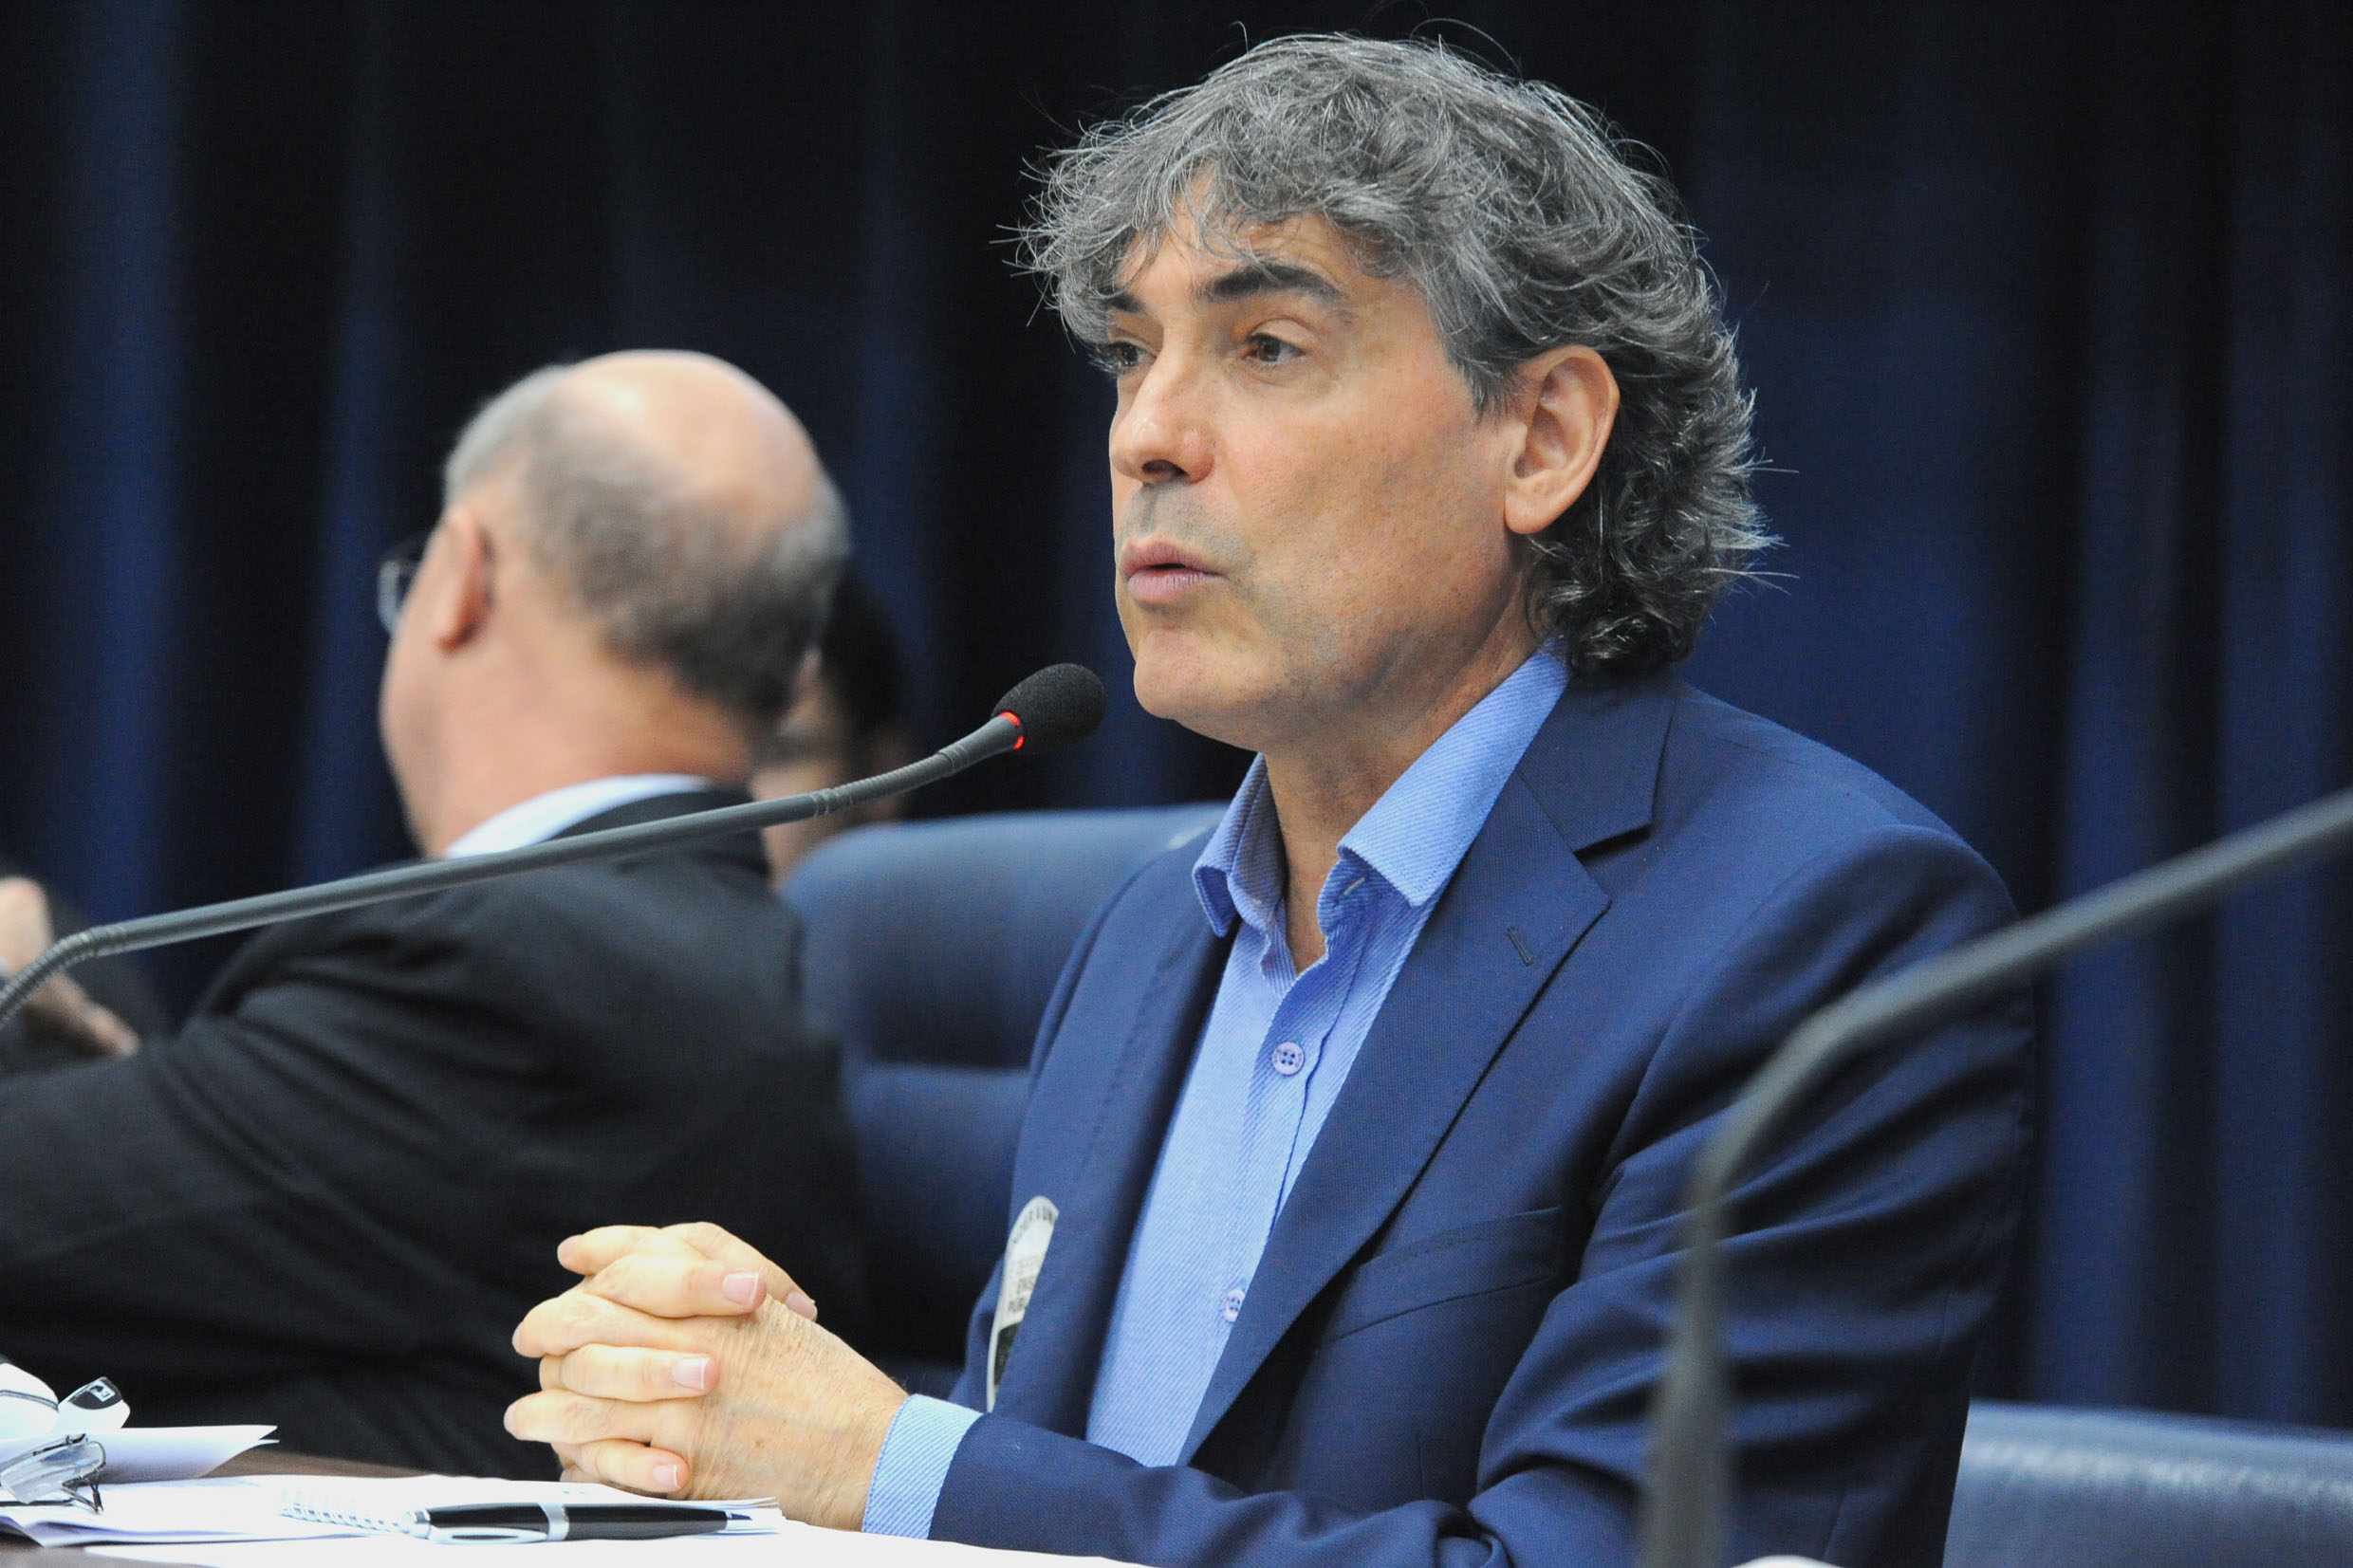 Carlos Giannazi<a style='float:right' href='https://www3.al.sp.gov.br/repositorio/noticia/N-06-2018/fg225251.jpg' target=_blank><img src='/_img/material-file-download-white.png' width='14px' alt='Clique para baixar a imagem'></a>